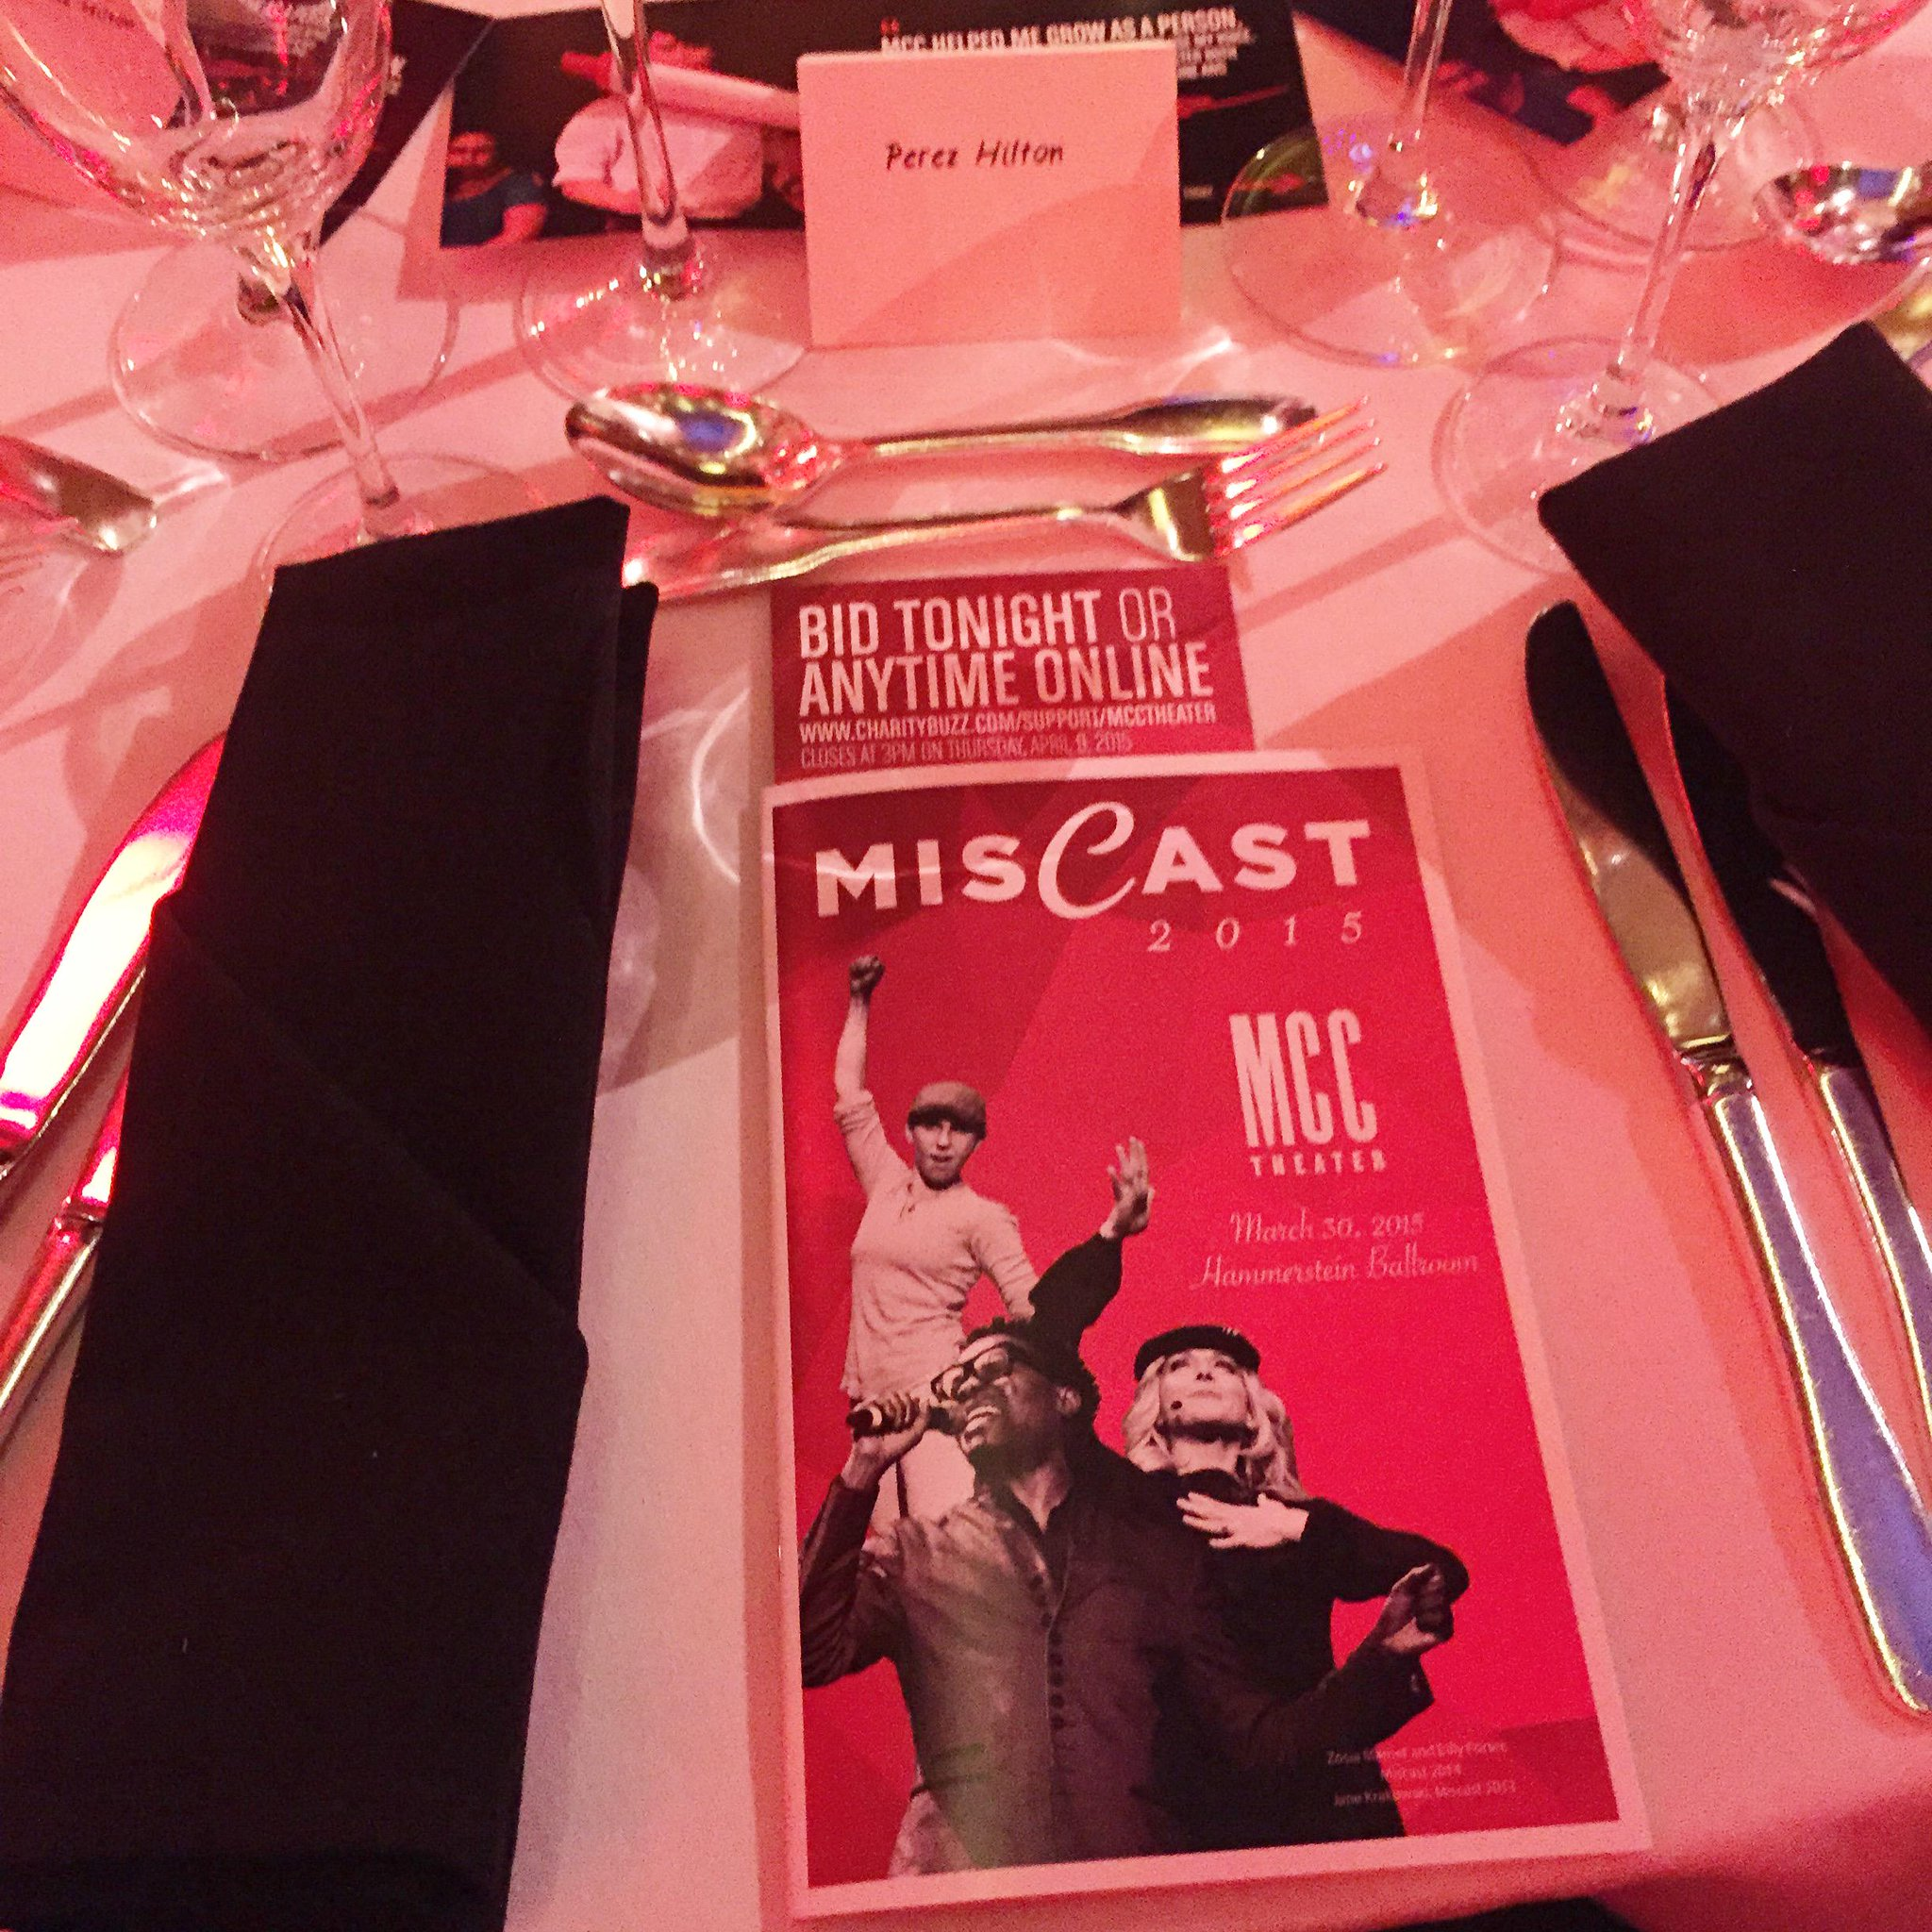 So happy to support @MCCtheater, but even happier I was able to enjoy #Miscast2015 and... https://t.co/VJrkhnTpU3 http://t.co/aAEGWI3bUP